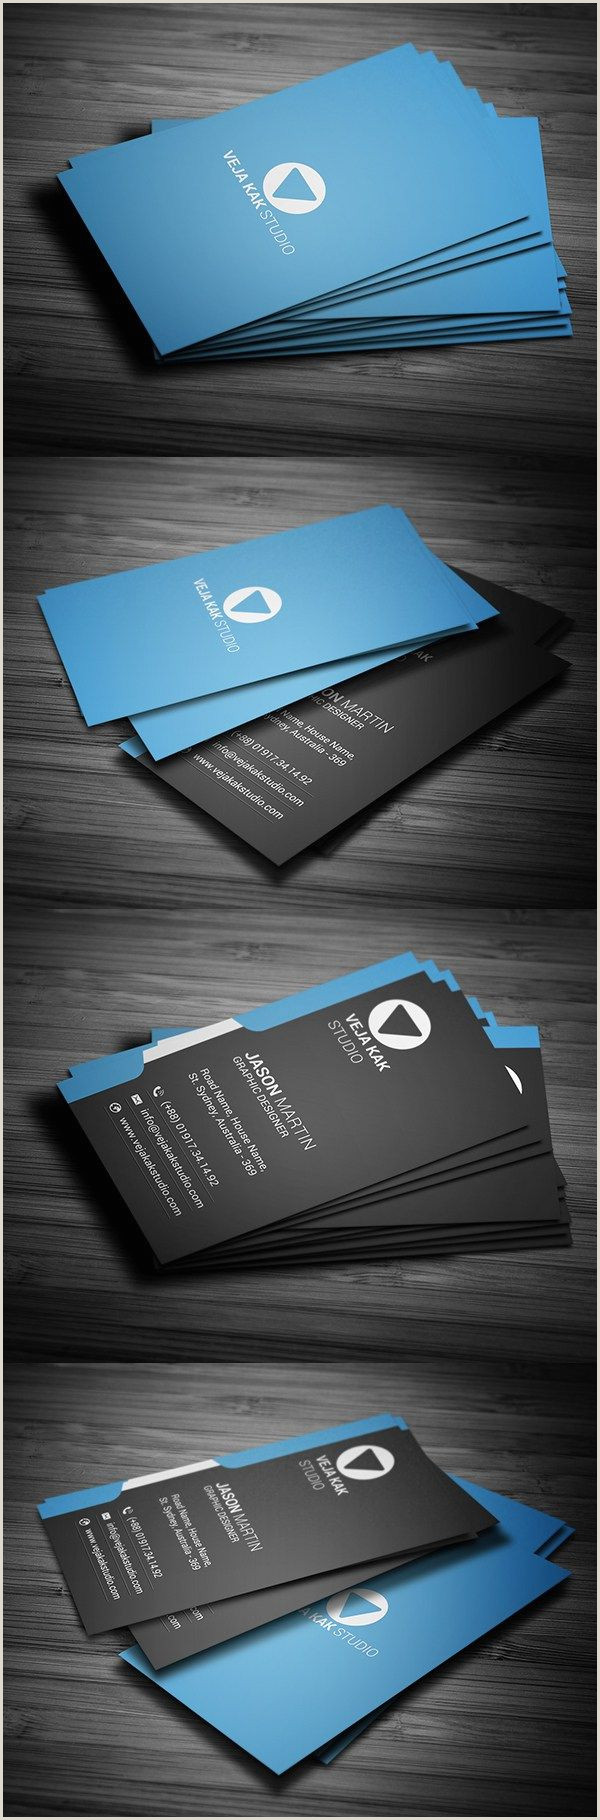 Print Visiting Cards 40 Best Business Card Design Images In 2020